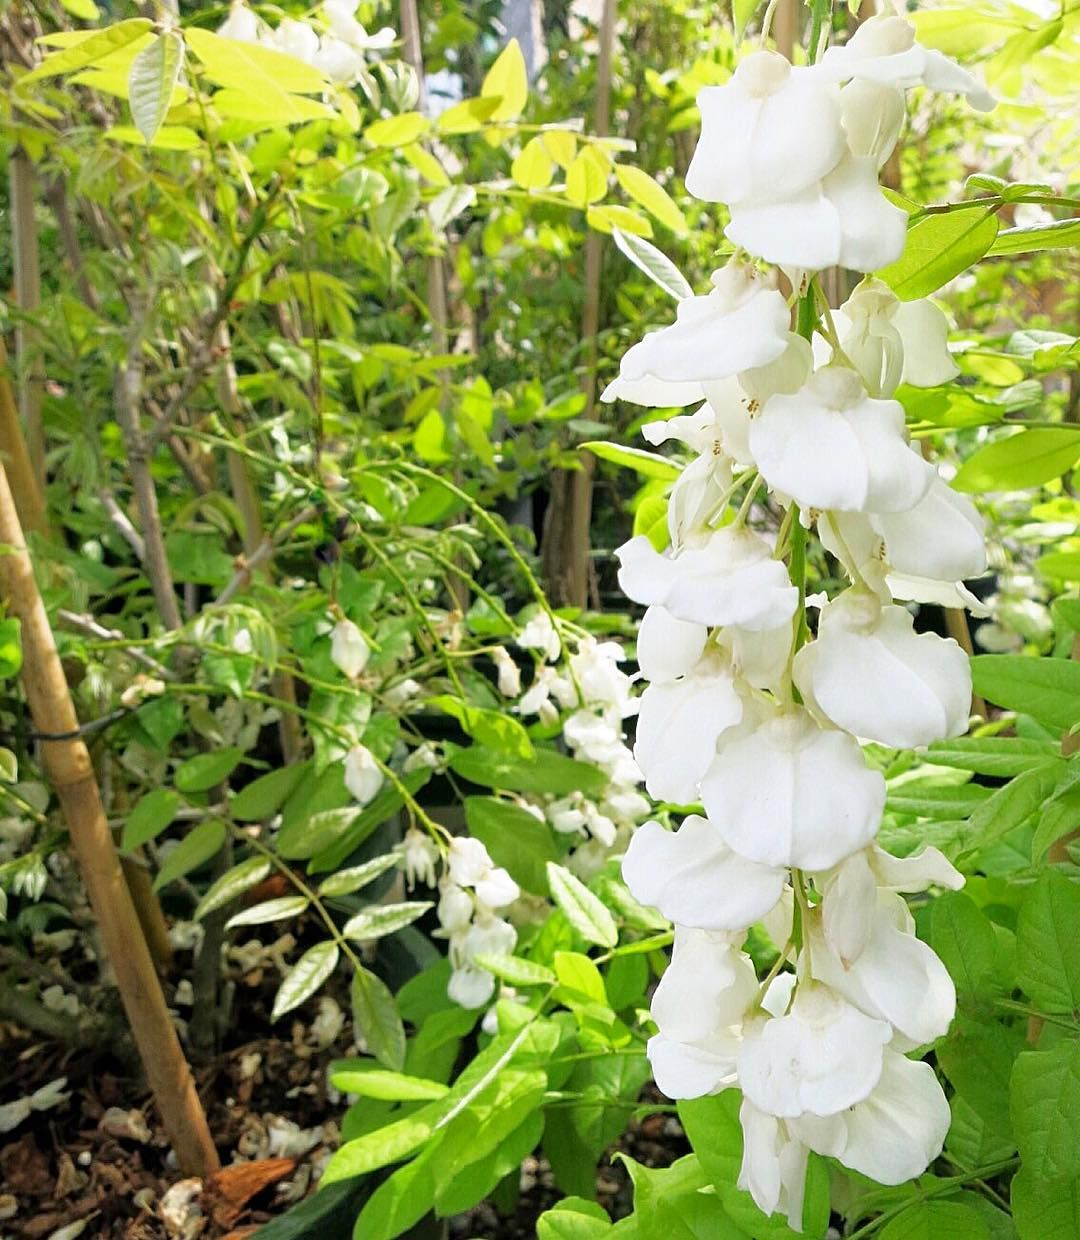 Long Clusters Of Dripping White Fragrant Flowers On Our White Japanese Wisteria ...sign Me Up